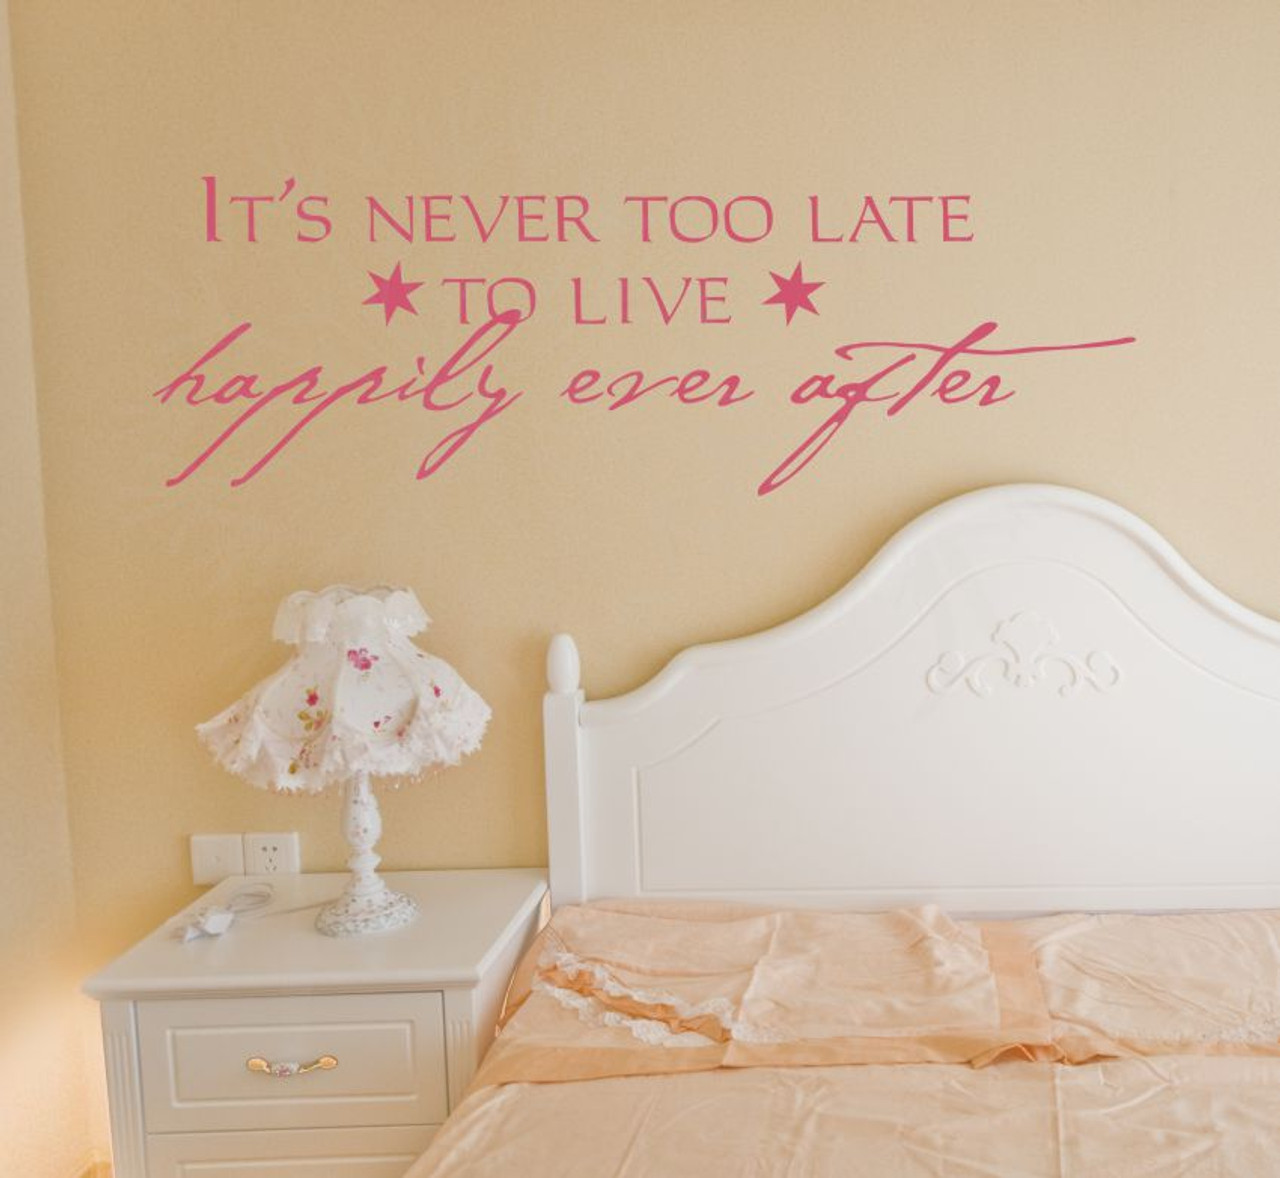 Itu0027s Never Too Late To Live Happily Ever After Wall Sayings For Bedroom Wall  Decals